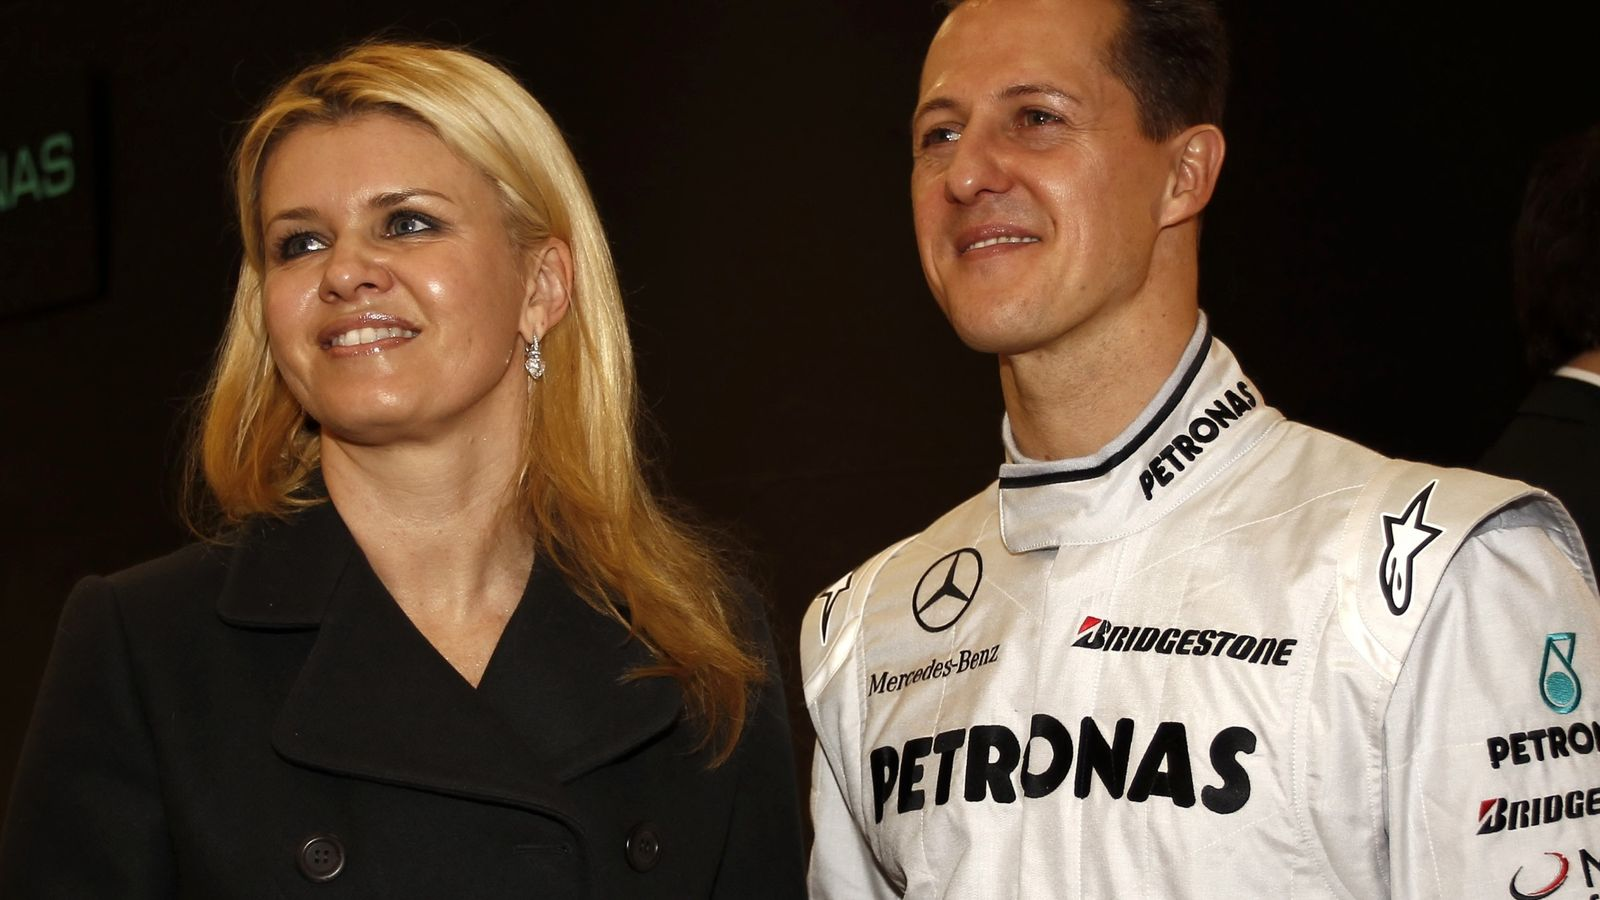 Michael Schumacher 'different, but he's here': F1 legend's wife Corinna provides update in documentary - Sky Sports